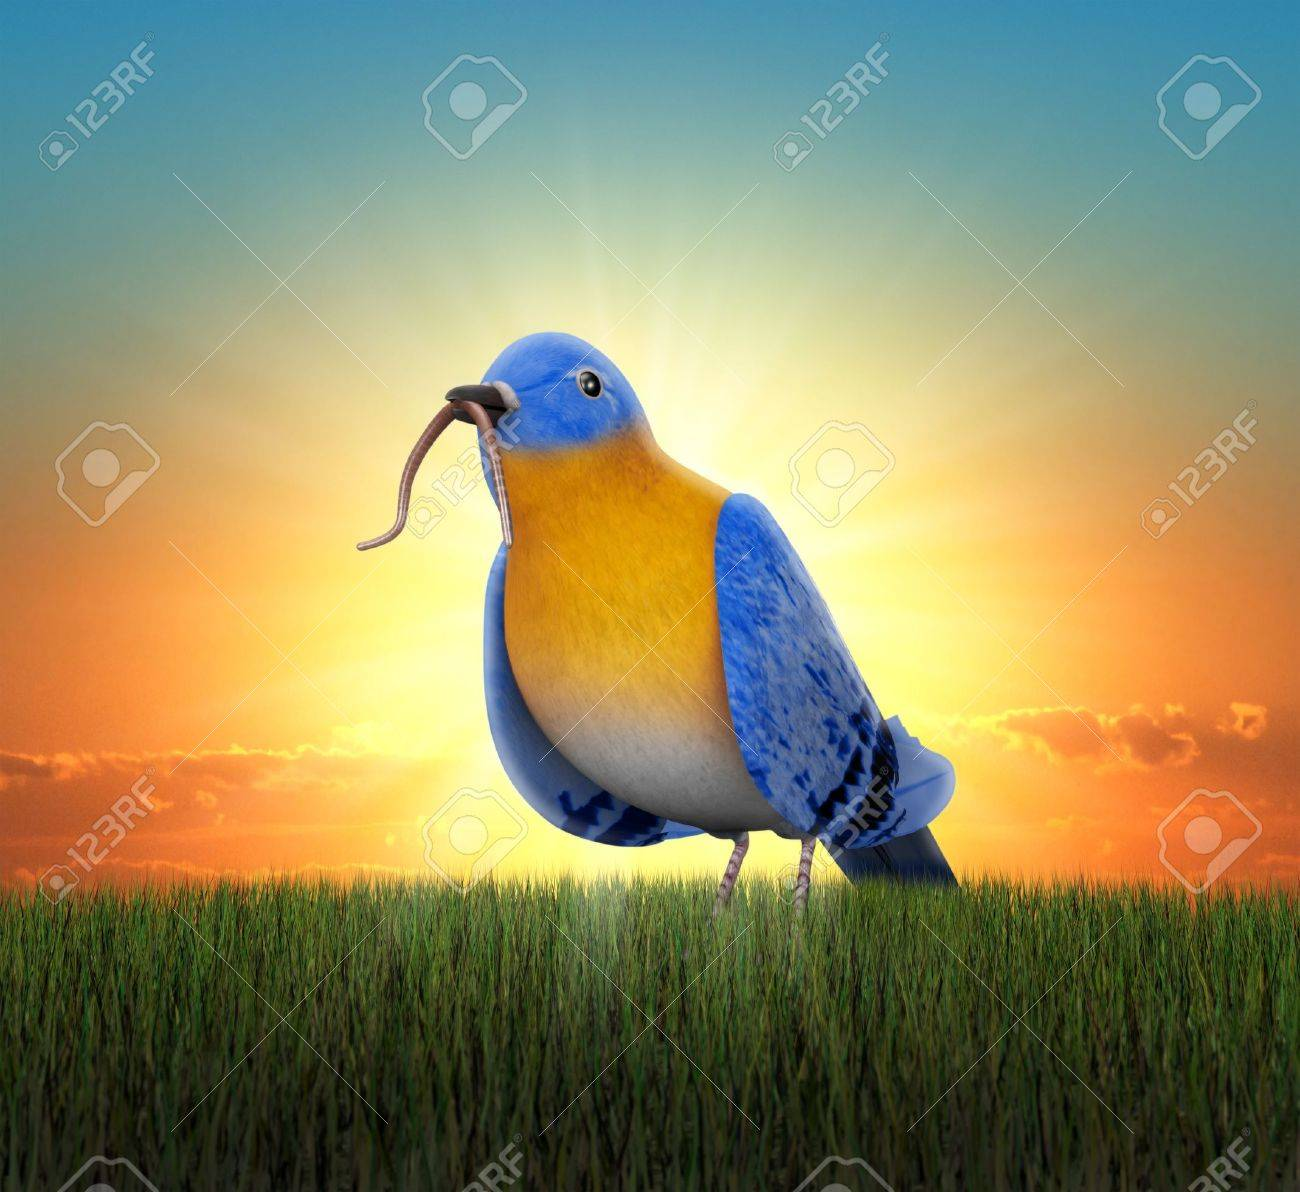 Bluebird standing in green grass, catching tha worm as the sun rises behind him Stock Photo - 16948148